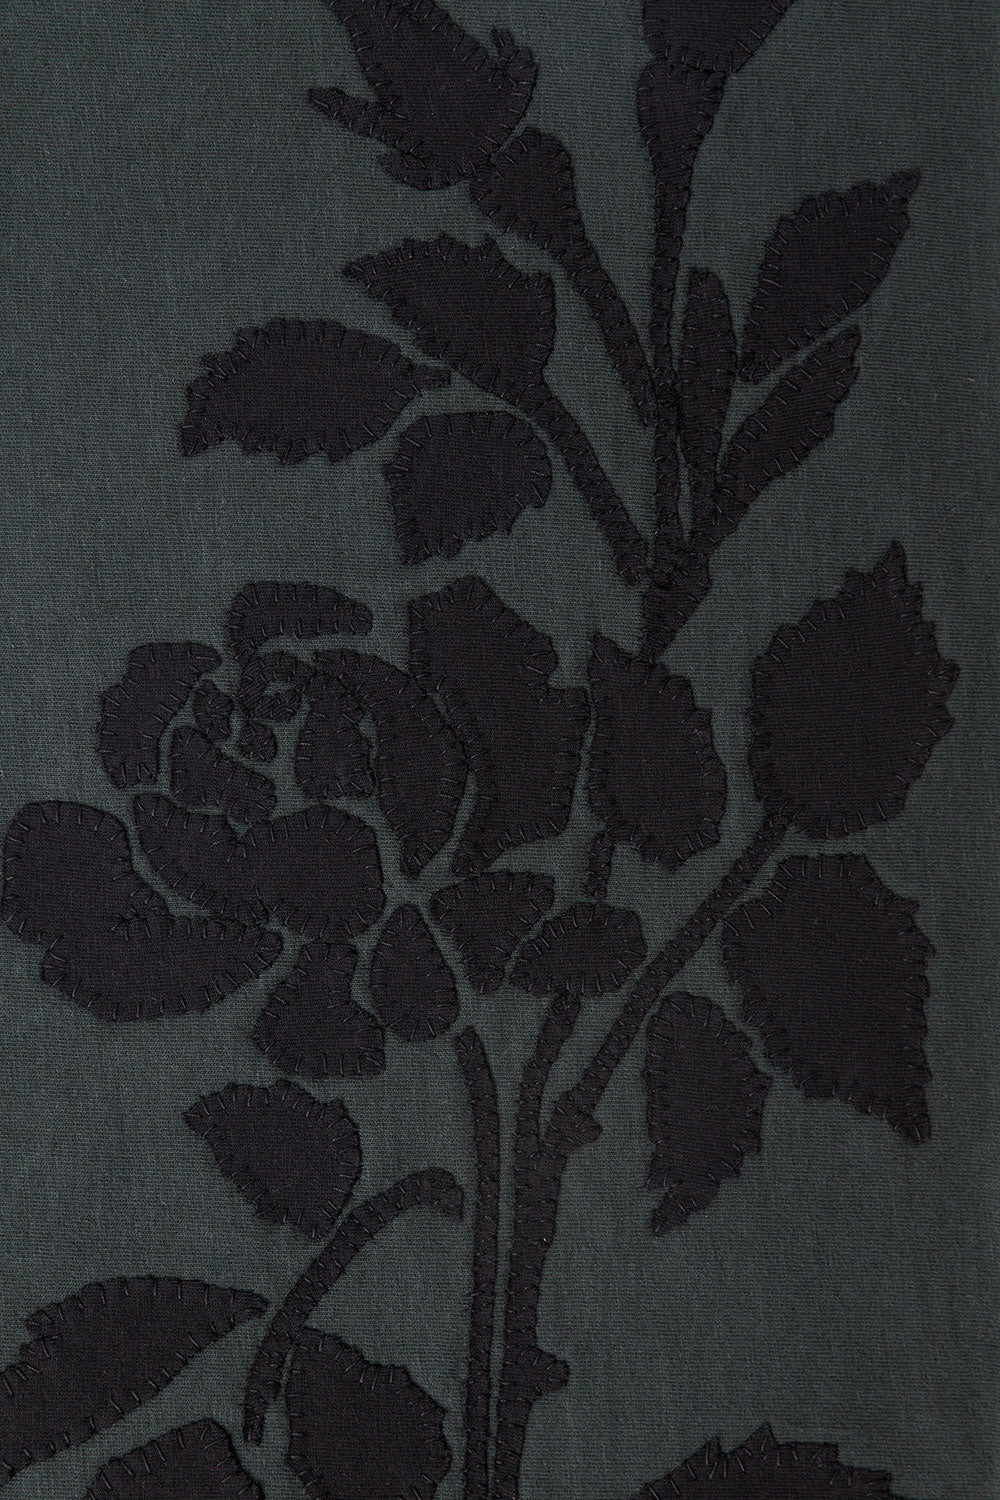 The School of Making Rose Placement Stencil hand-sewn in grey organic cotton and black applique